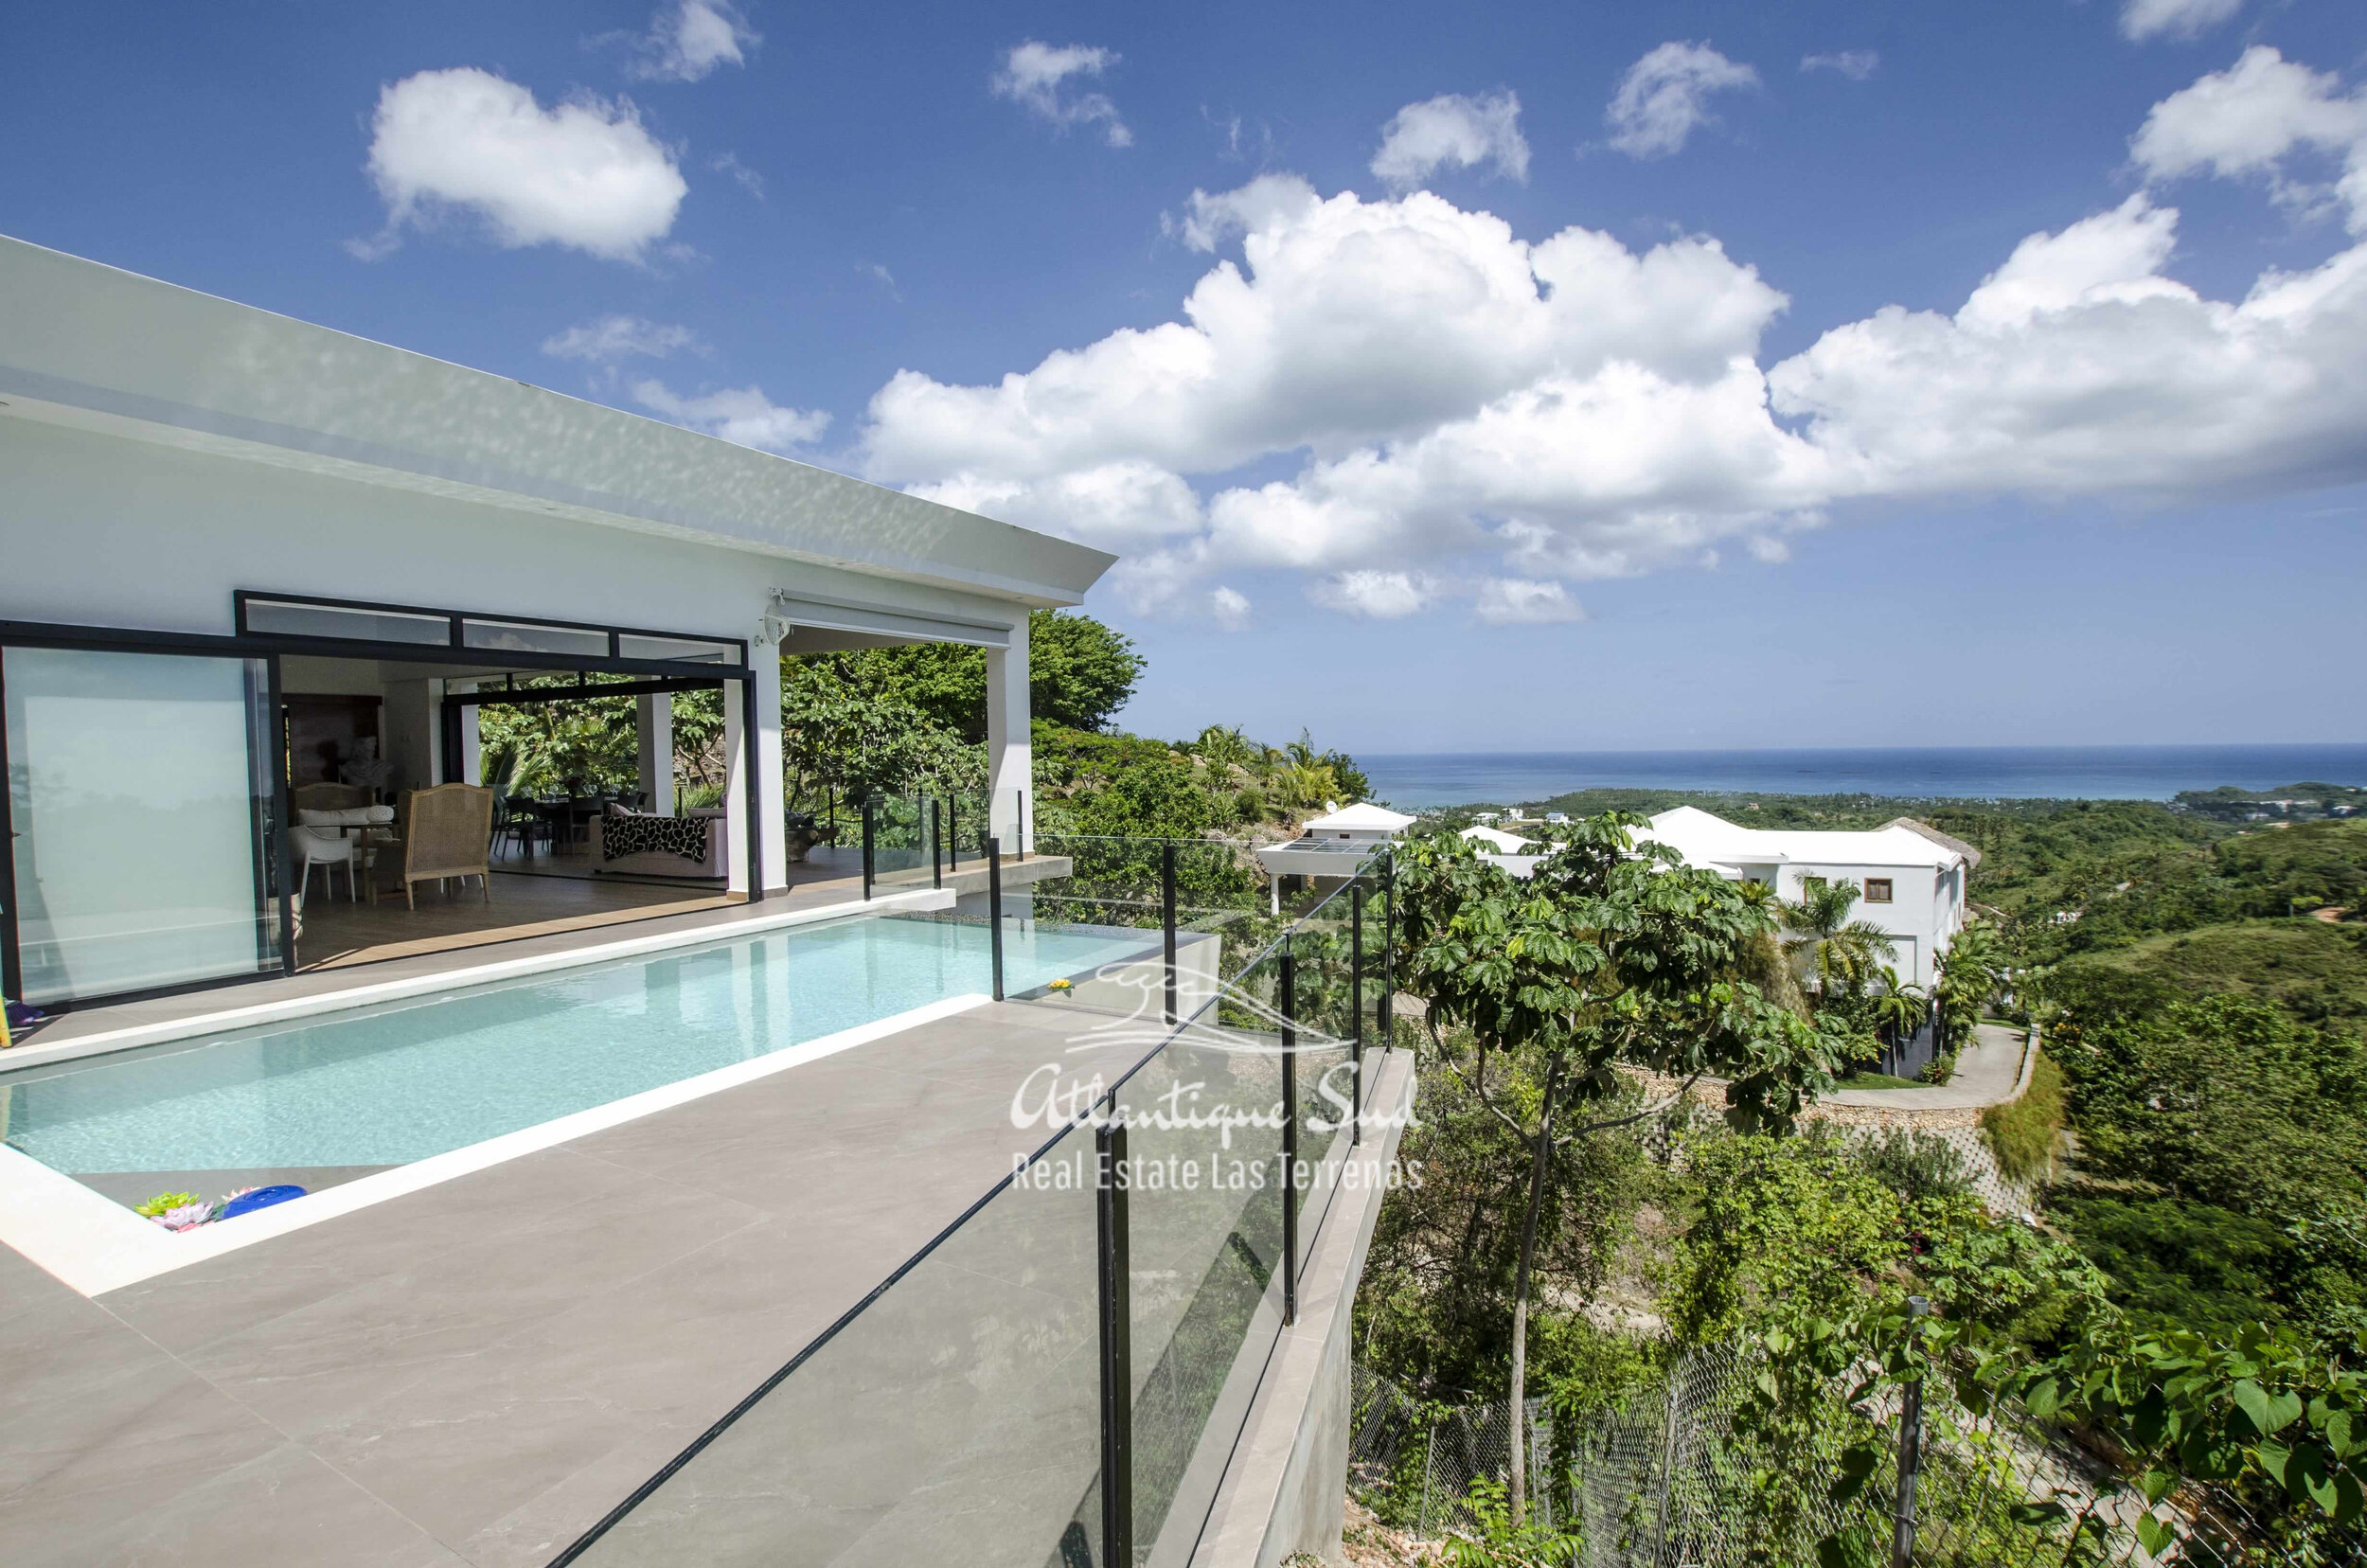 3BR Villa for sale in verde hill las terrenas 40-min.jpg